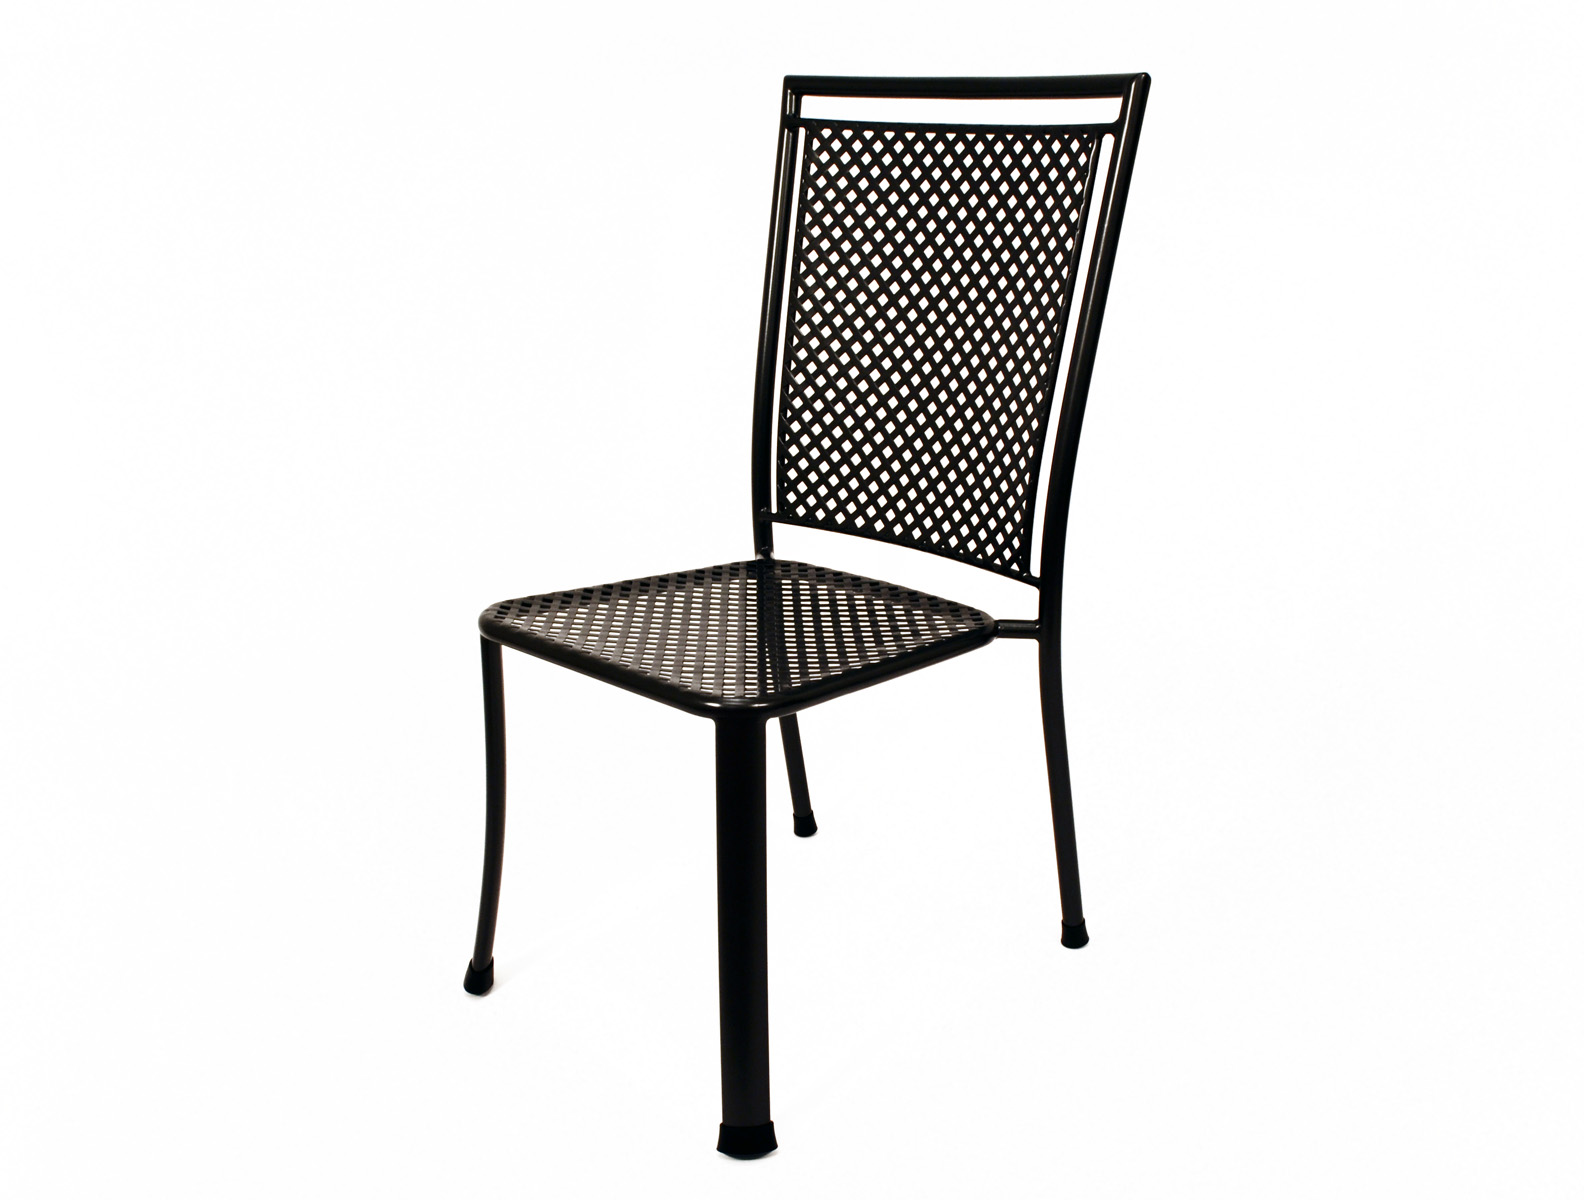 Reno Collection Resort Contract Furnishings mercial Outdoor Furniture a